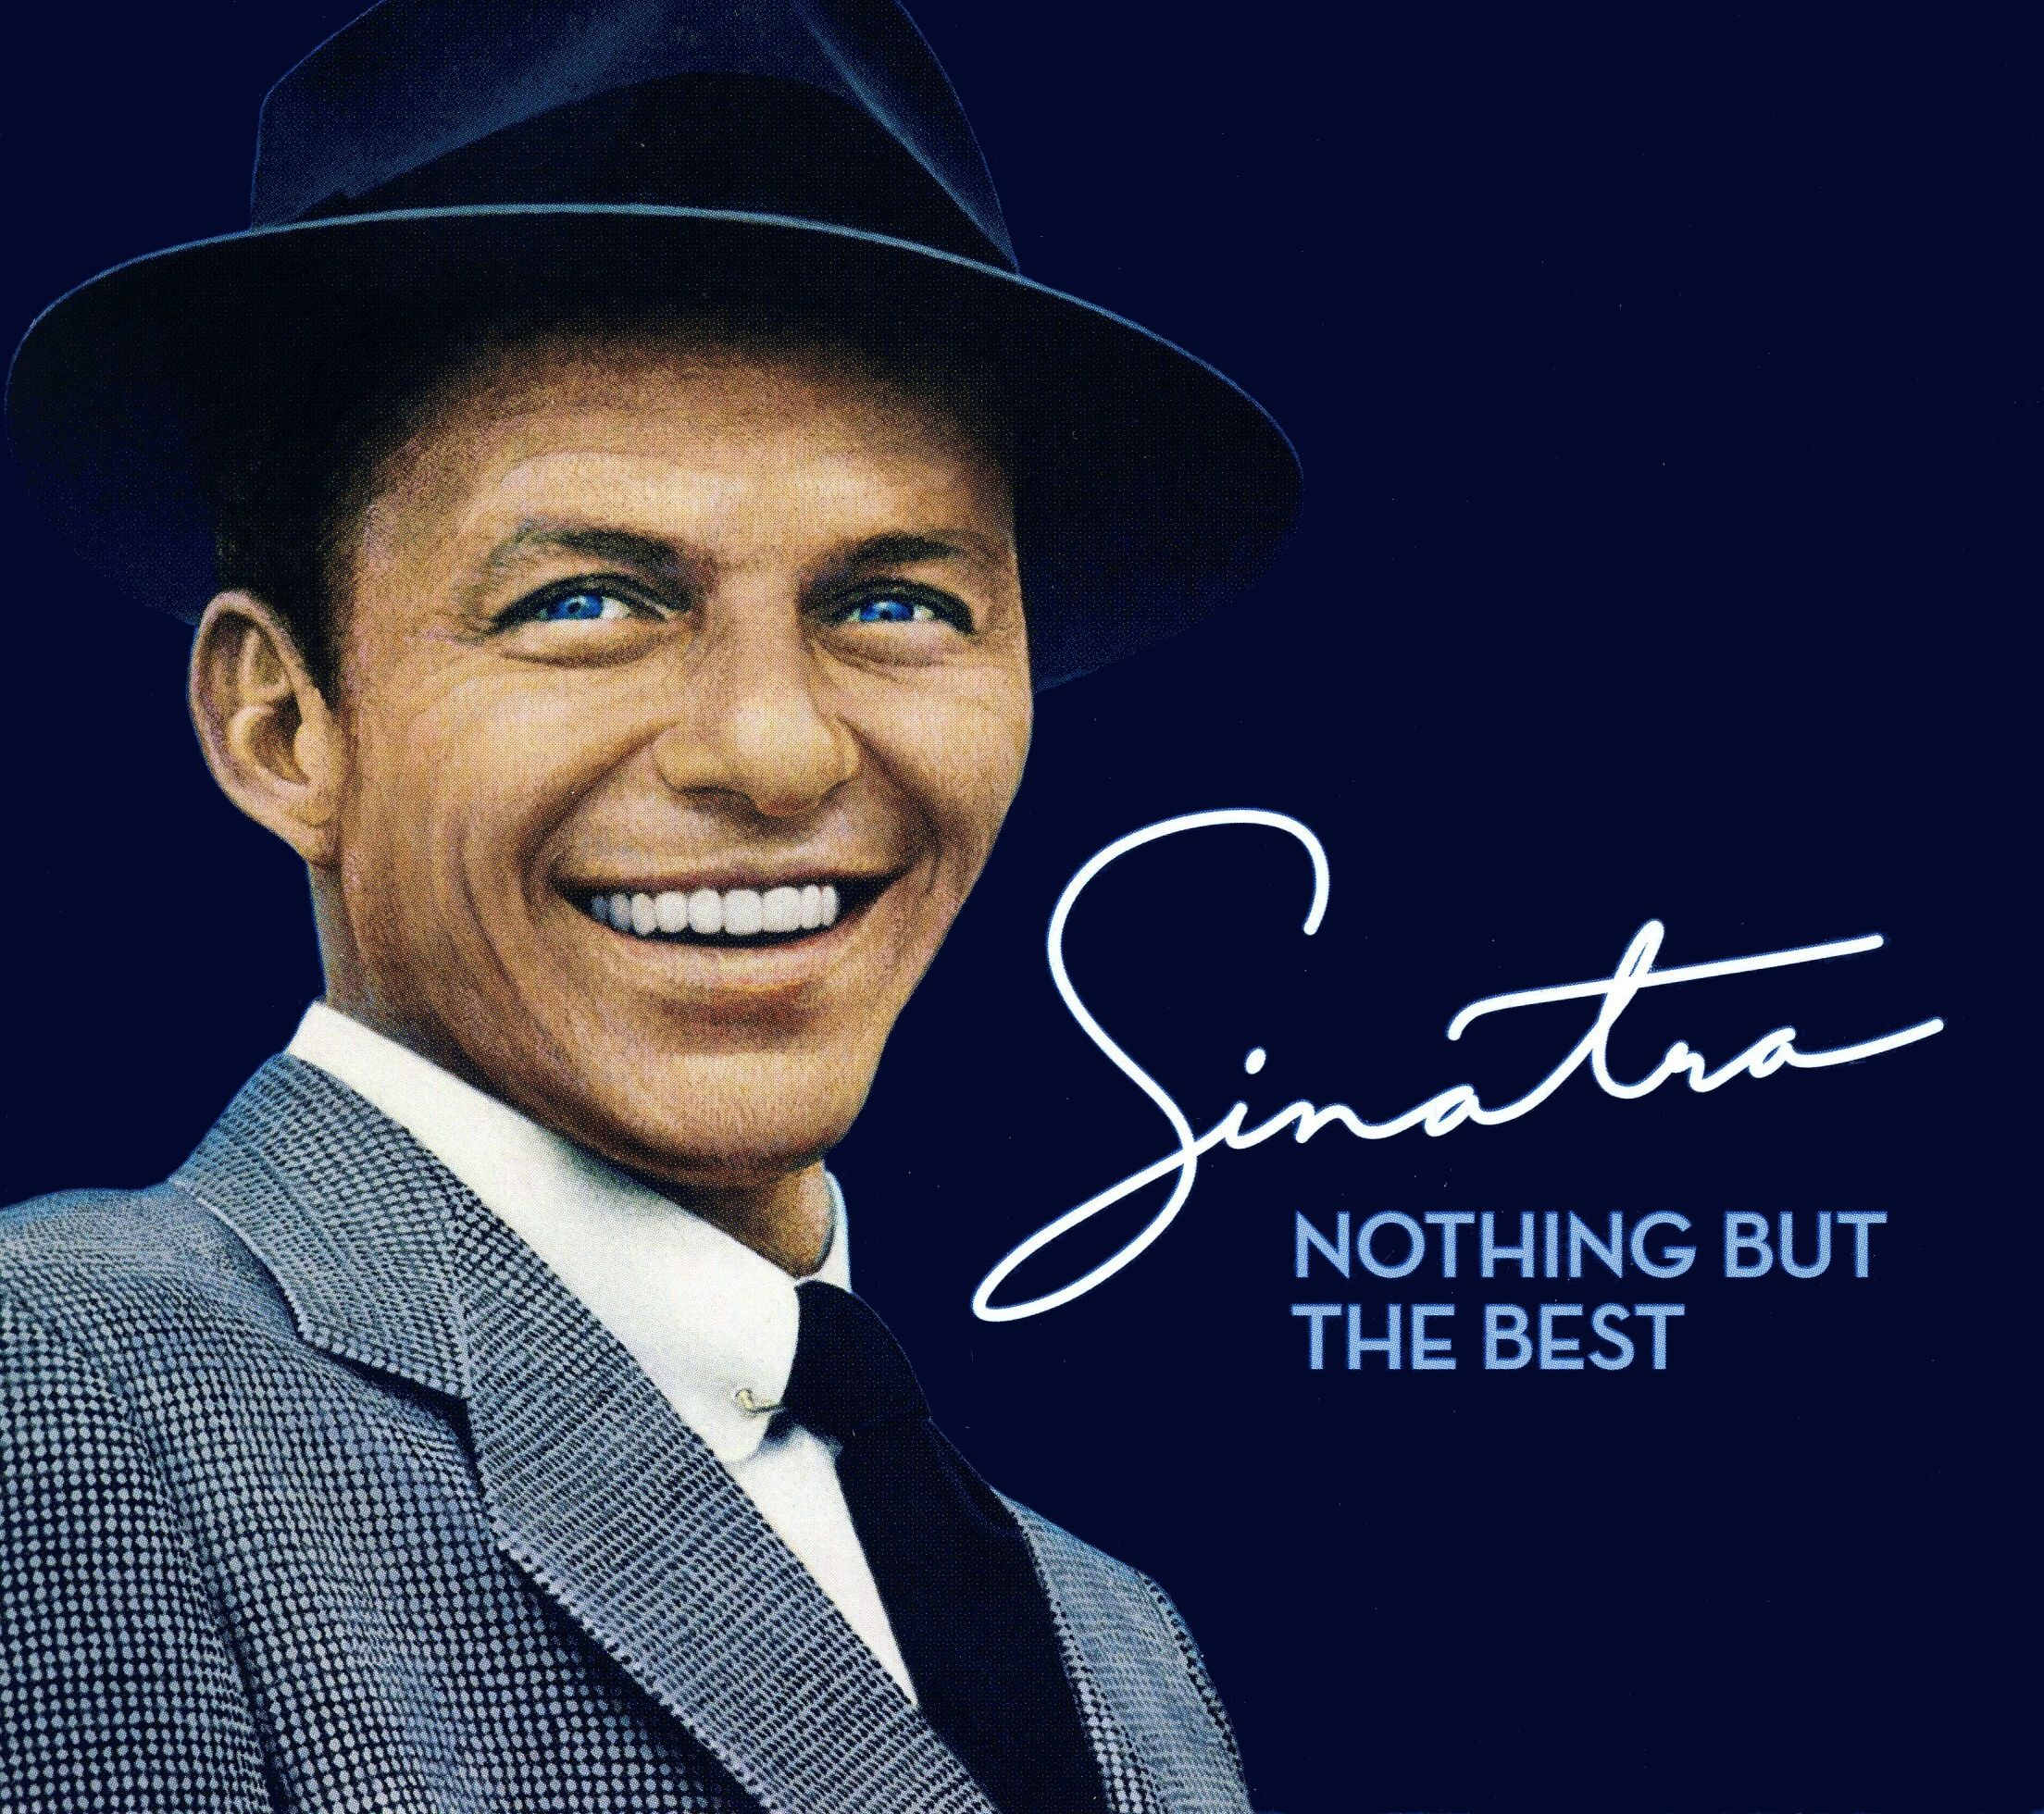 Frank Sinatra - Nothing But The Best album cover